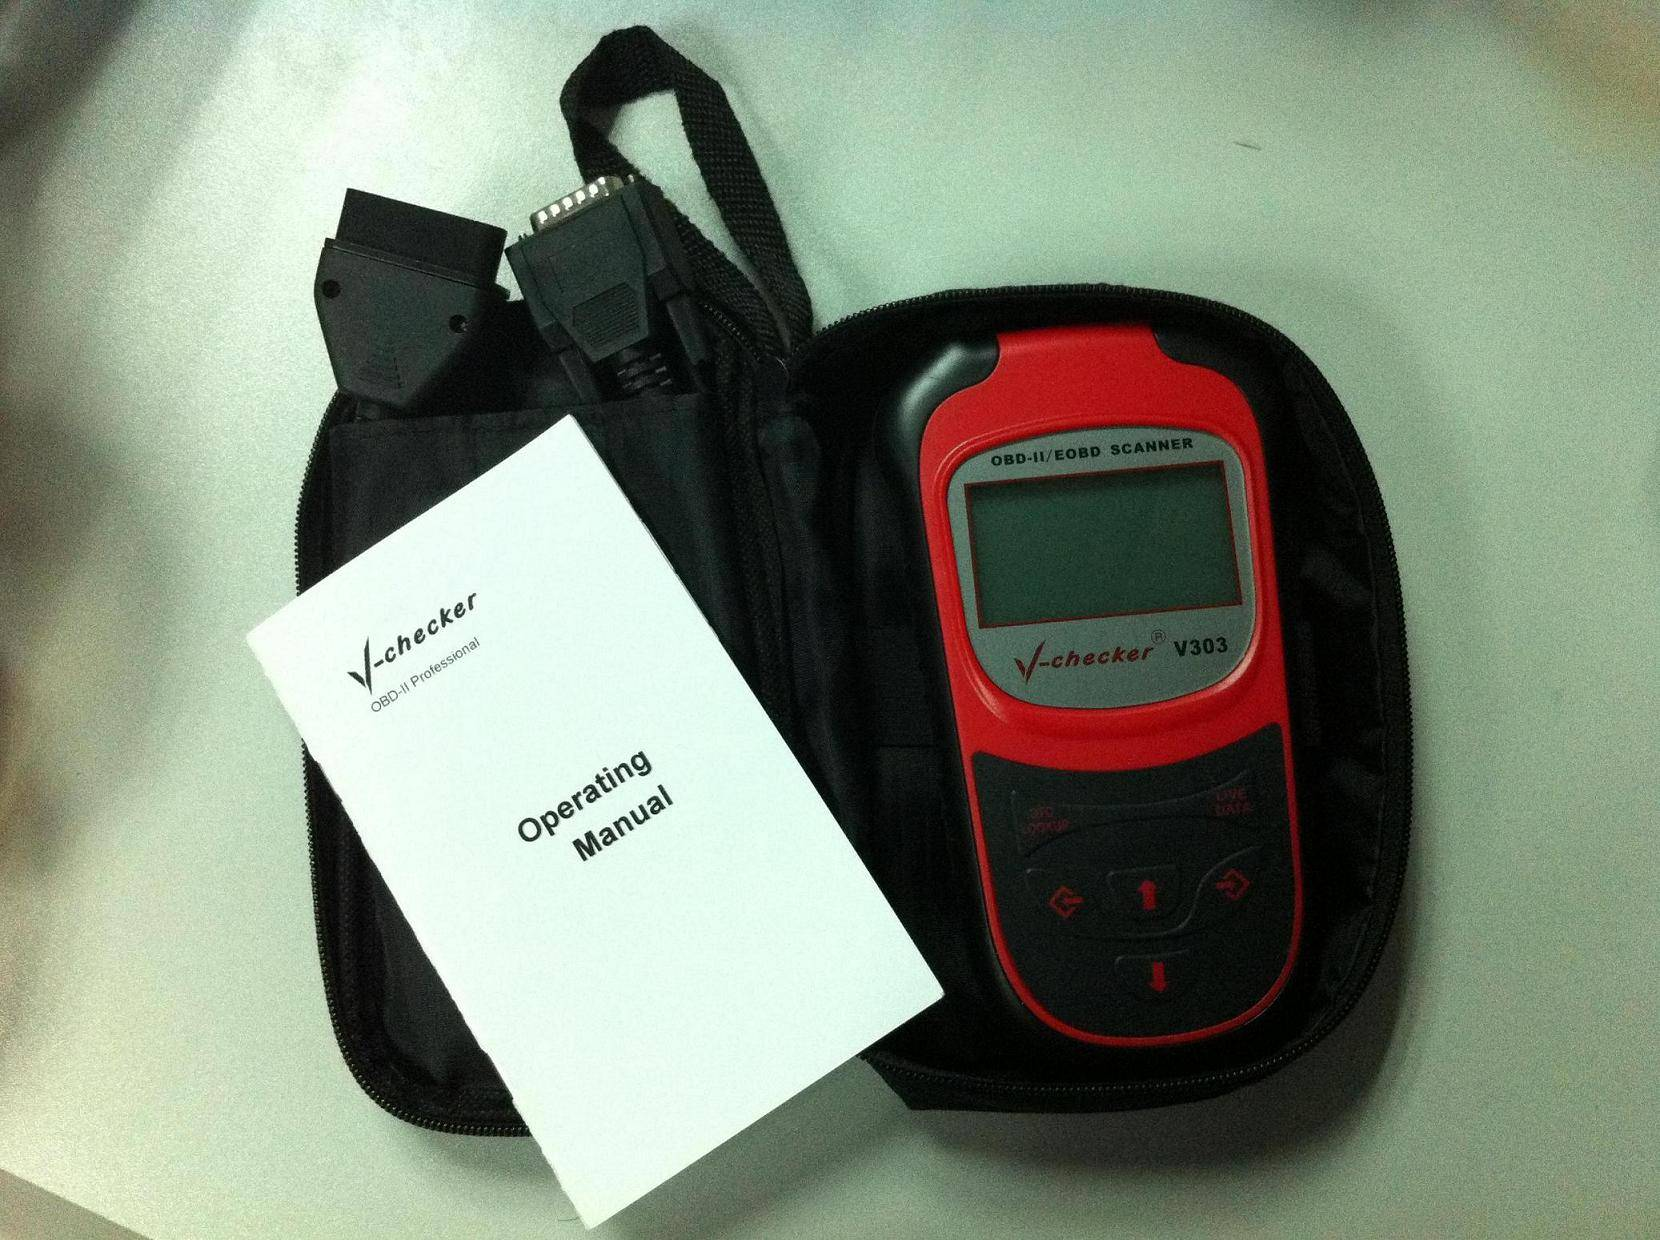 Newest OBDII/EOBD Code Scanner, OBD2 Car Diagnostic Tools, Vchecker V303 Automotive Accessory